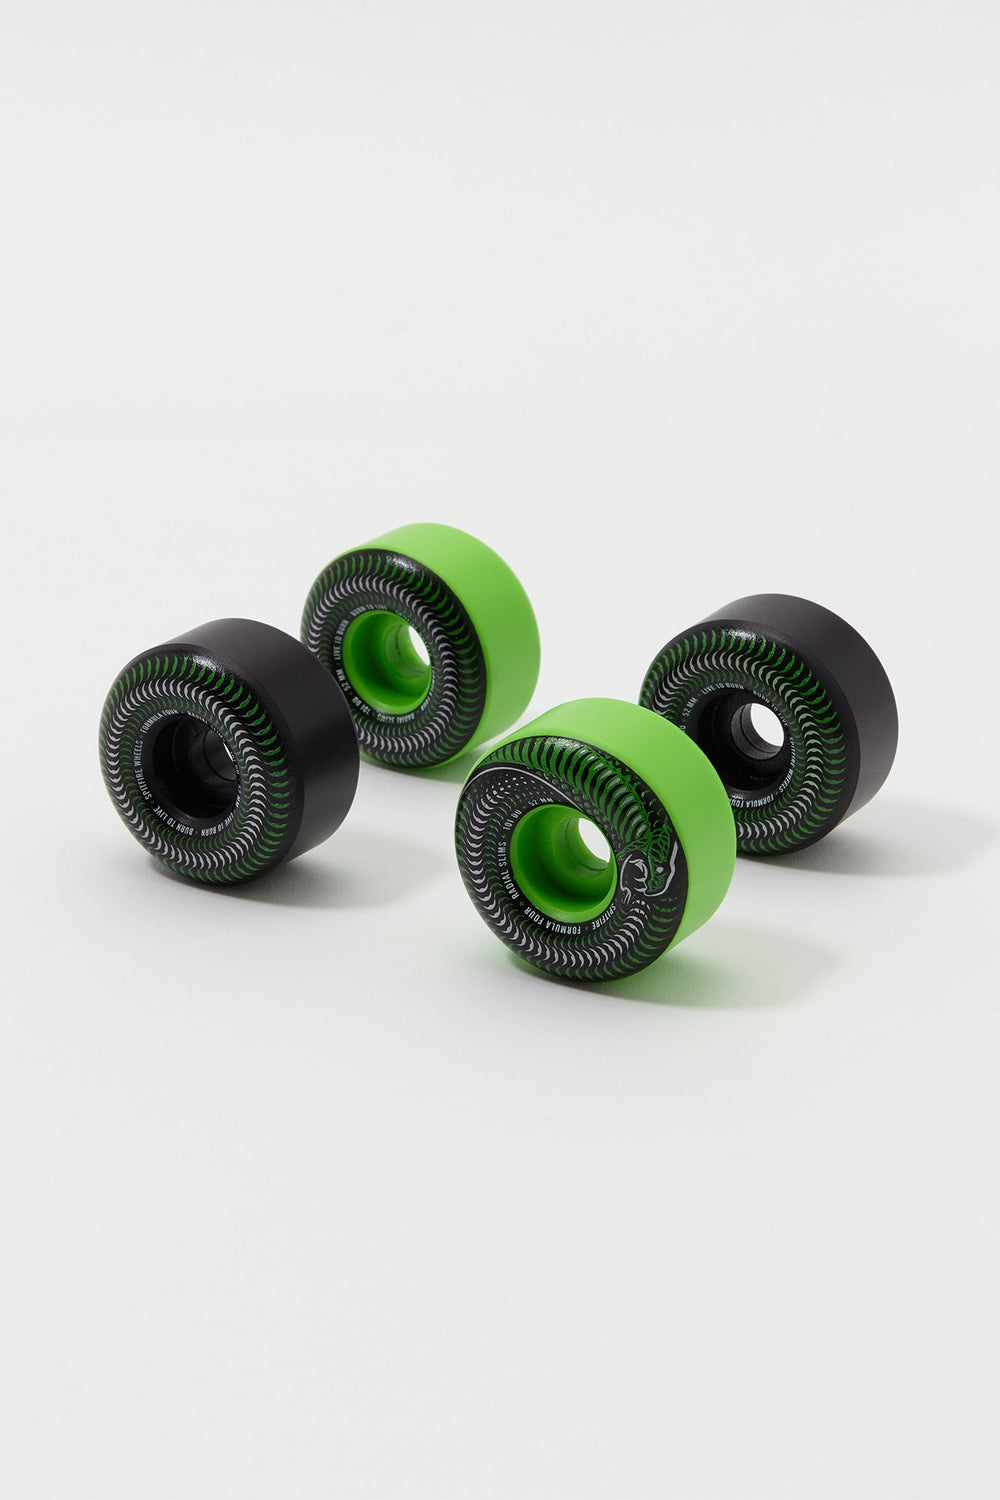 Spitfire Formula Four Radial Slims Skateboard Wheels 52mm Green